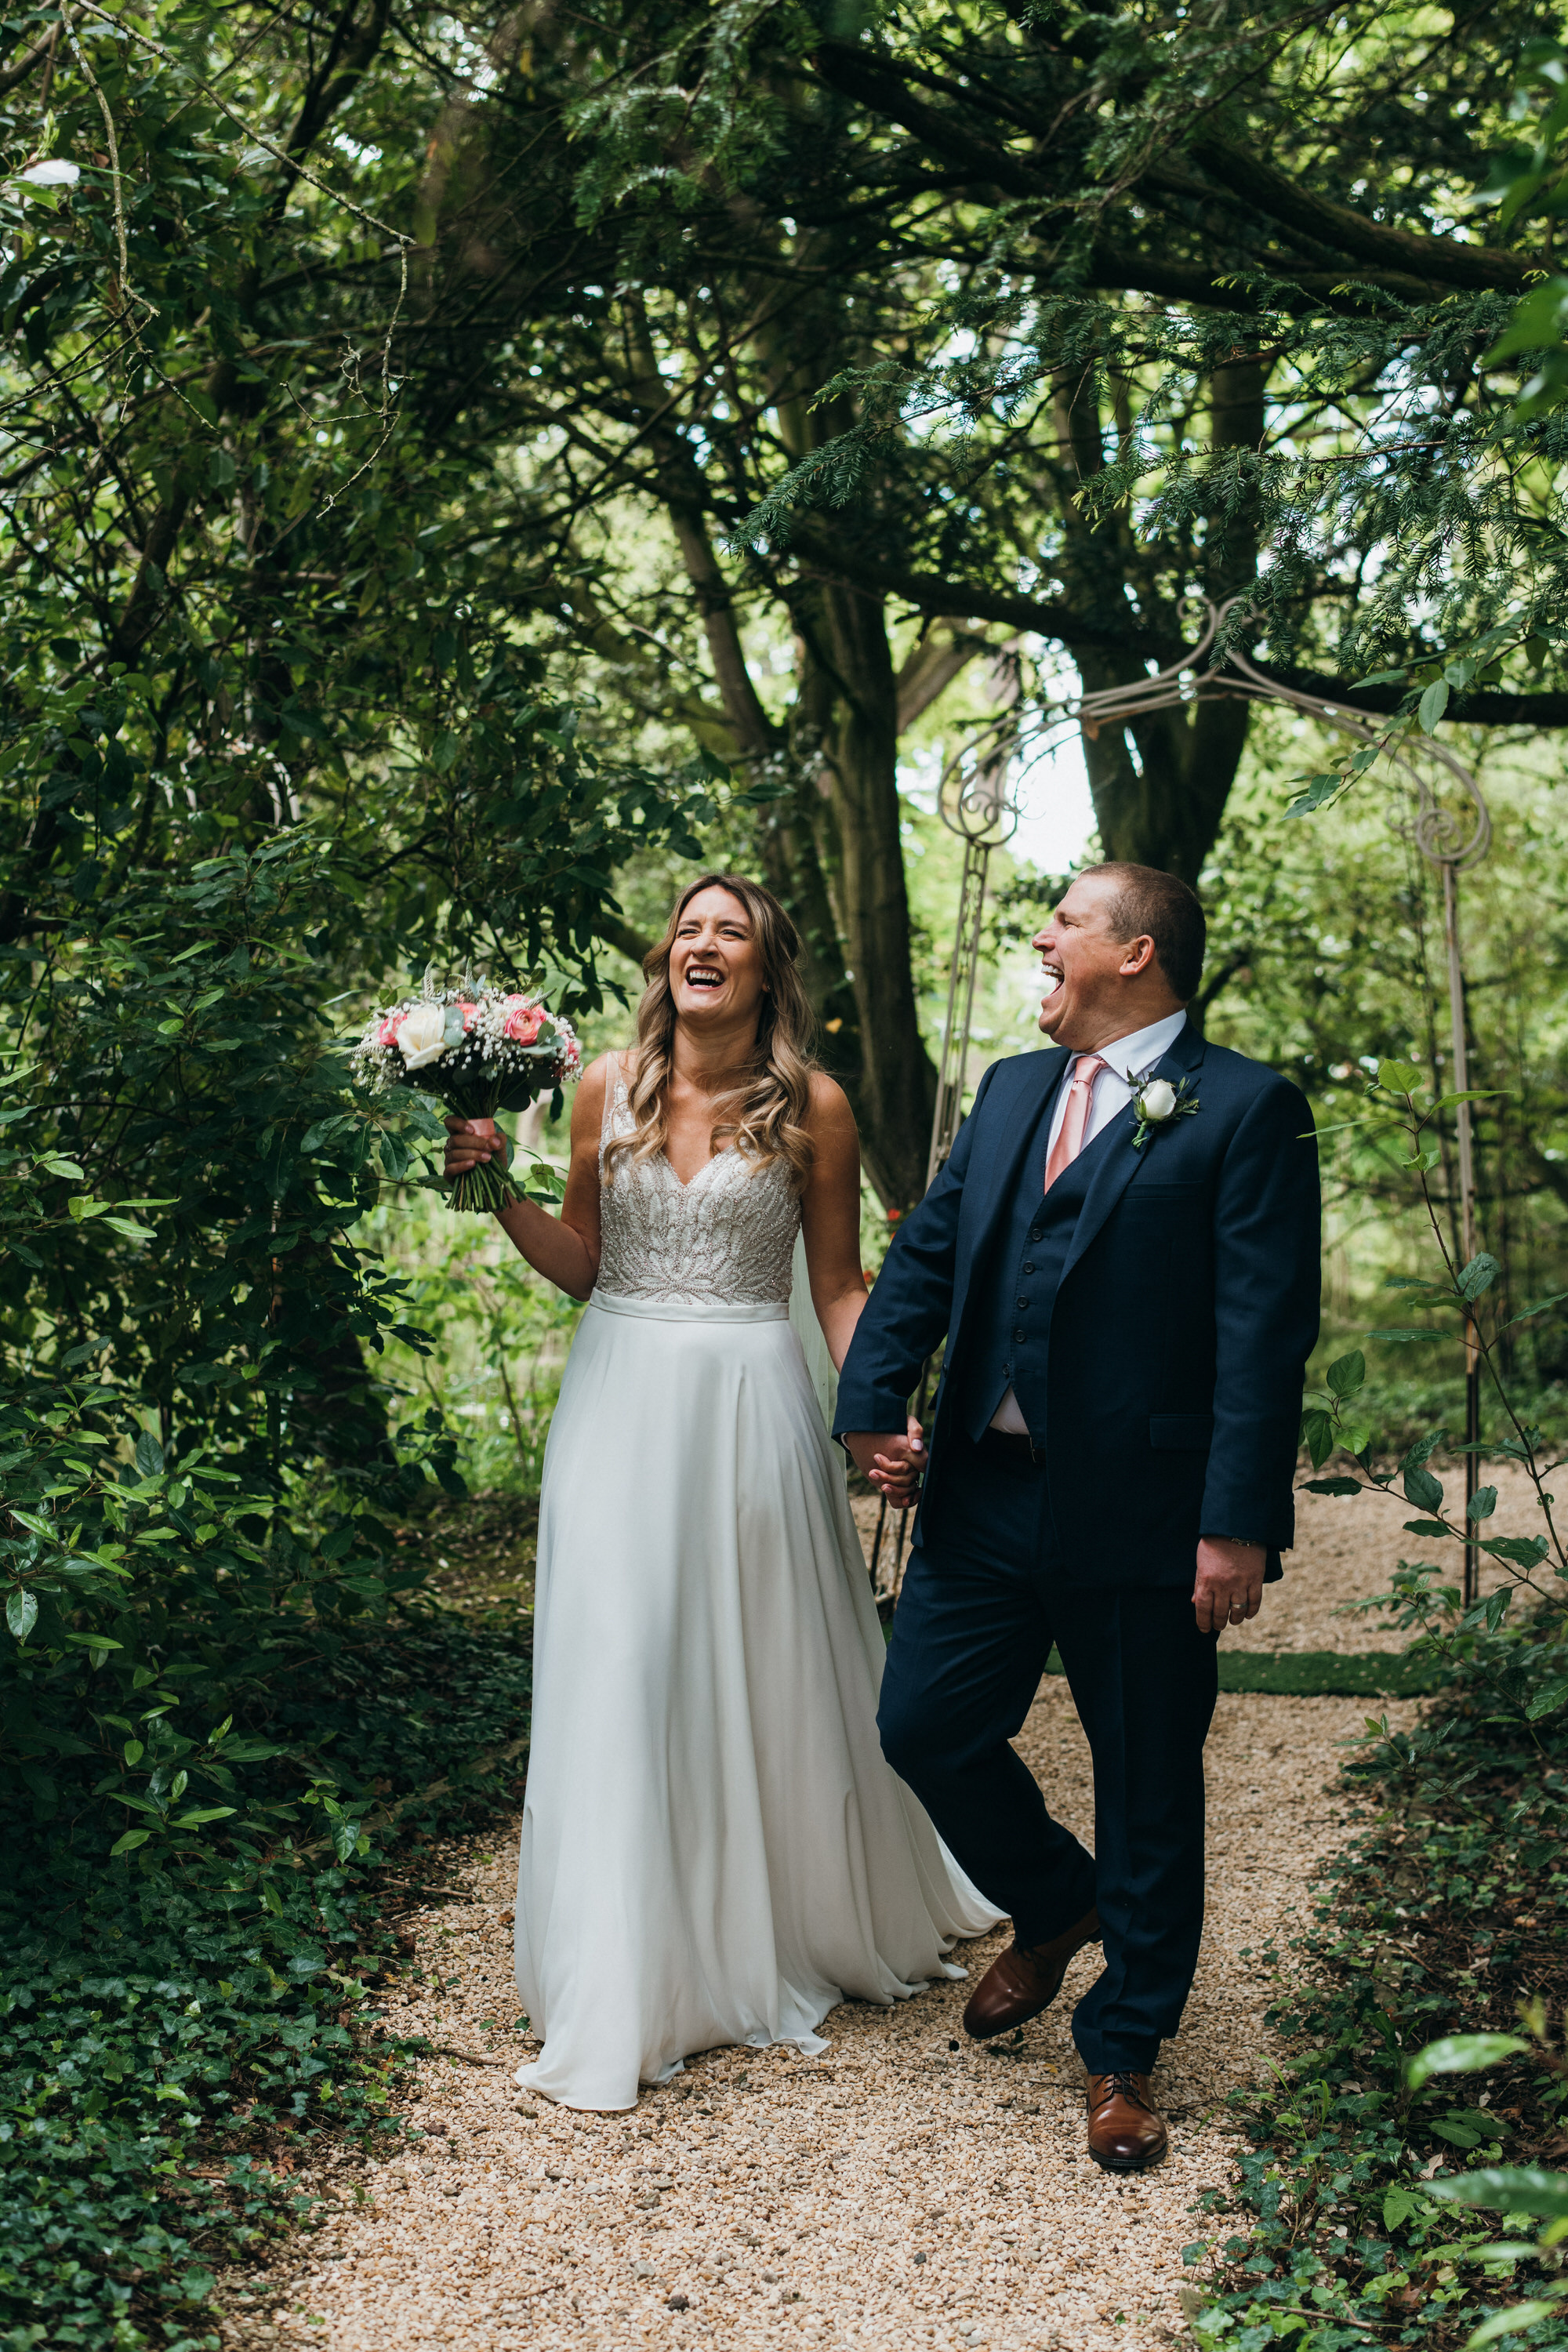 Manor by the lake wedding photographer 36